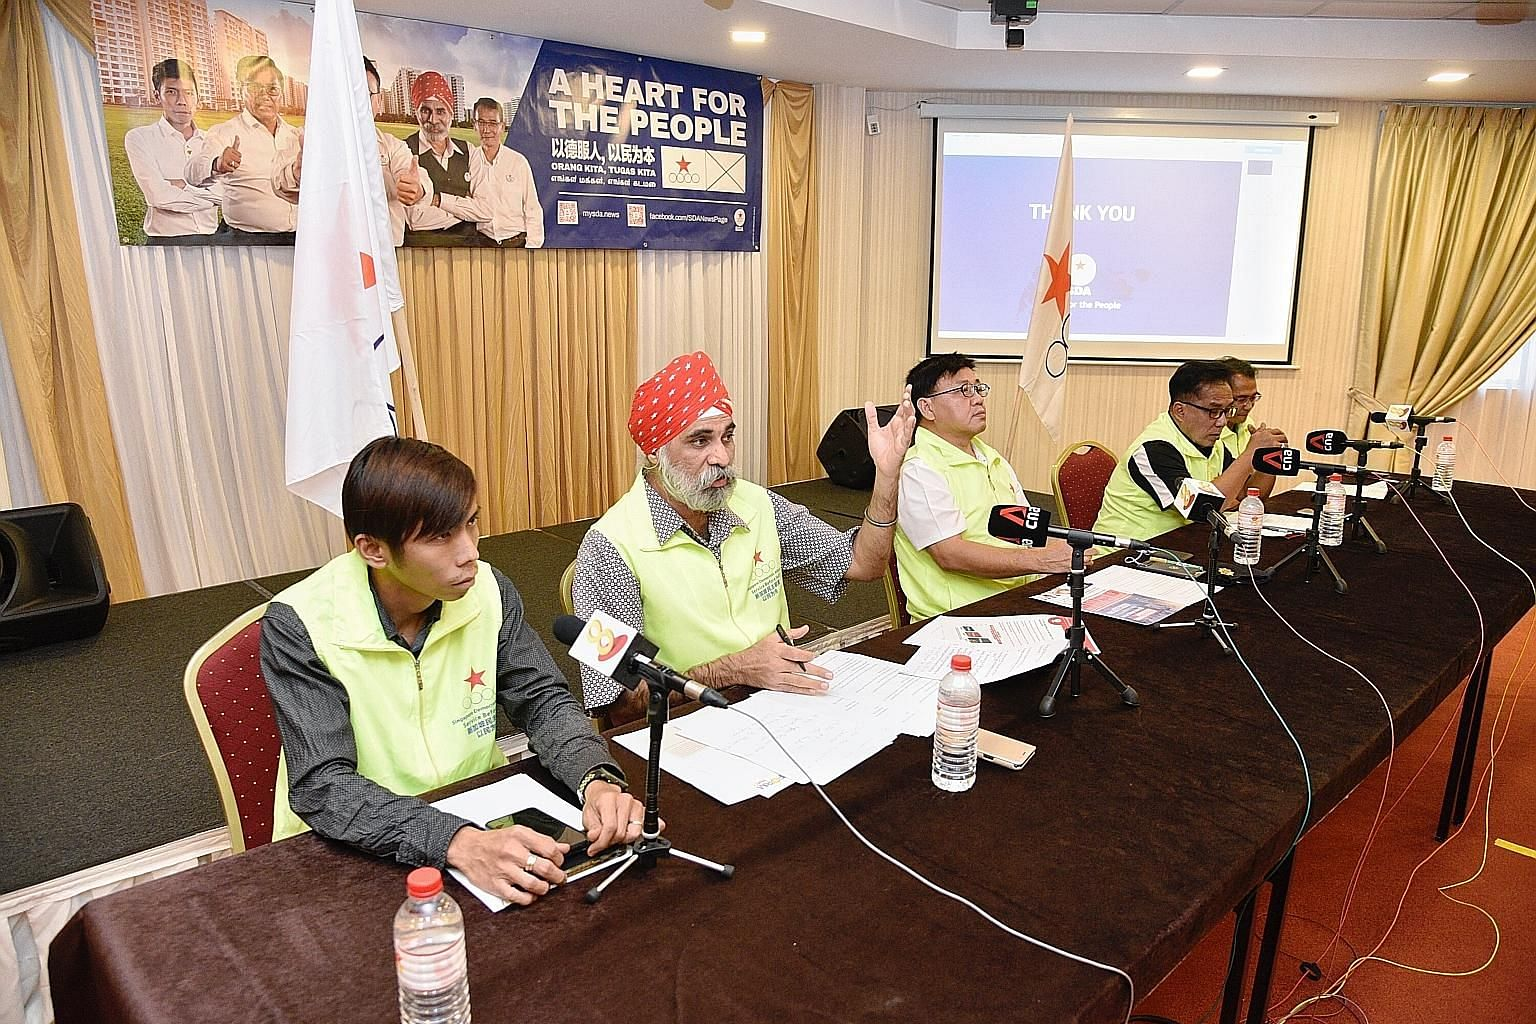 Singapore Democratic Alliance candidates for Pasir Ris-Punggol GRC (from left) Kelvin Ong, Harminder Pal Singh, Desmond Lim Bak Chuan, Abu Mohamed and Kuswadi Atnawi at a media conference in Changi yesterday.